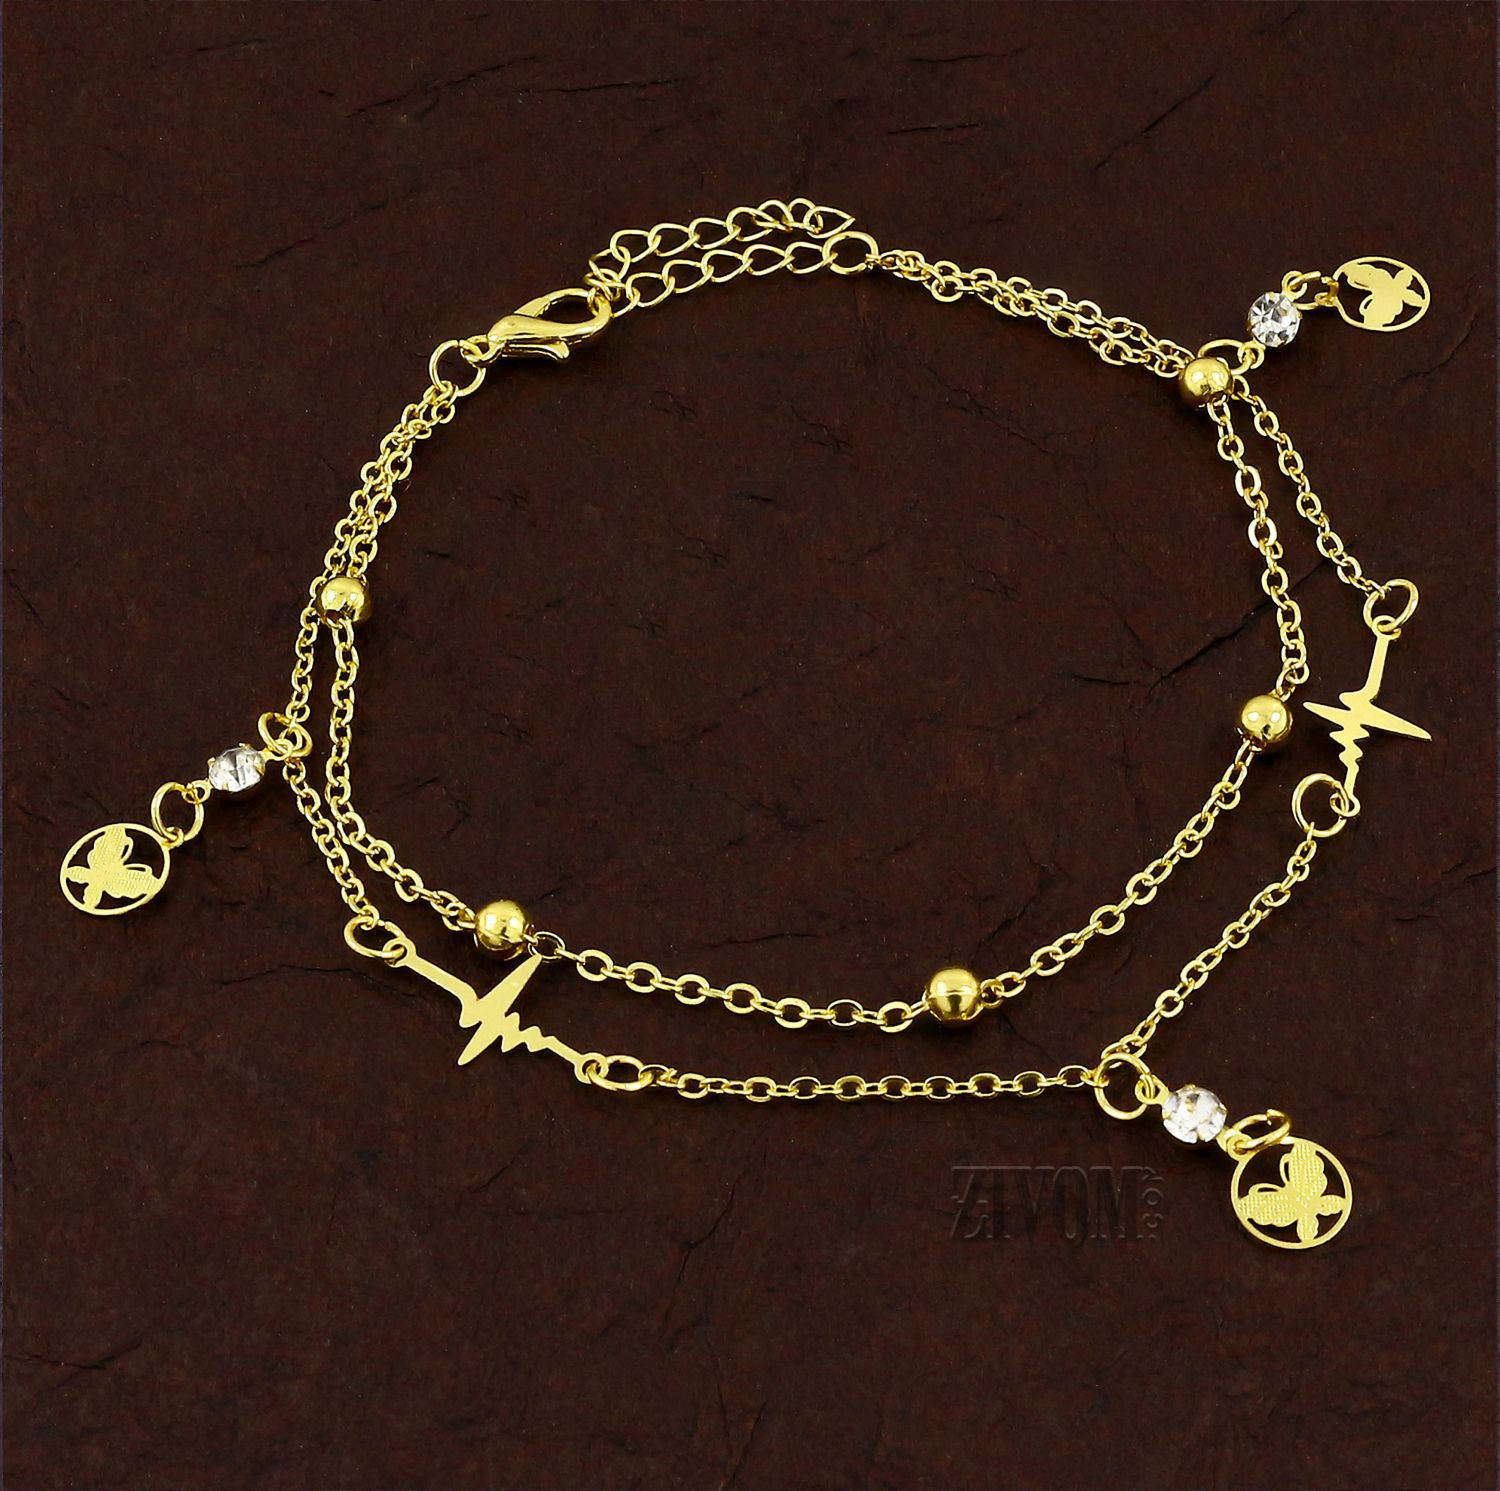 Zivom® Butterfly Stylish Indo Western Dainty Delicate Charms Single Leg Anklet Payal for Women Girls